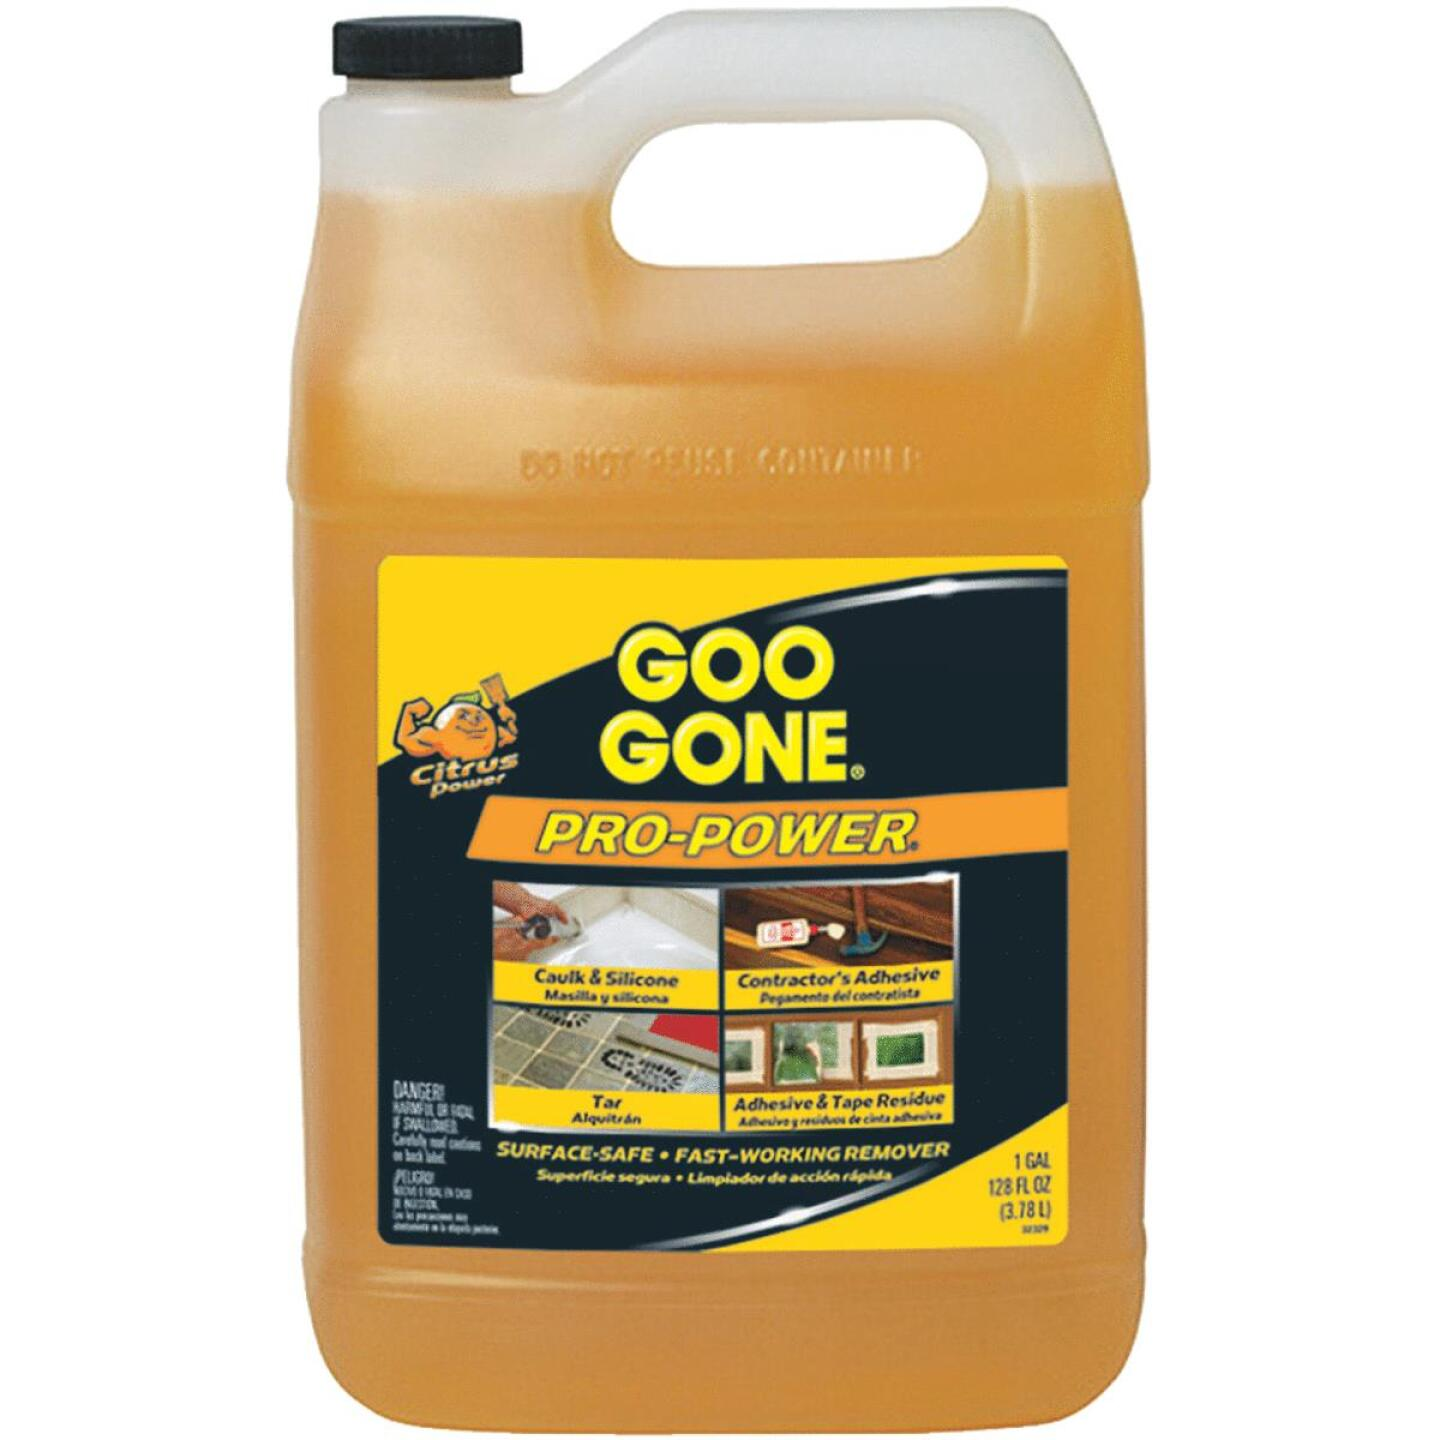 Goo Gone 1 Gal. Pro-Power Adhesive Remover Image 359